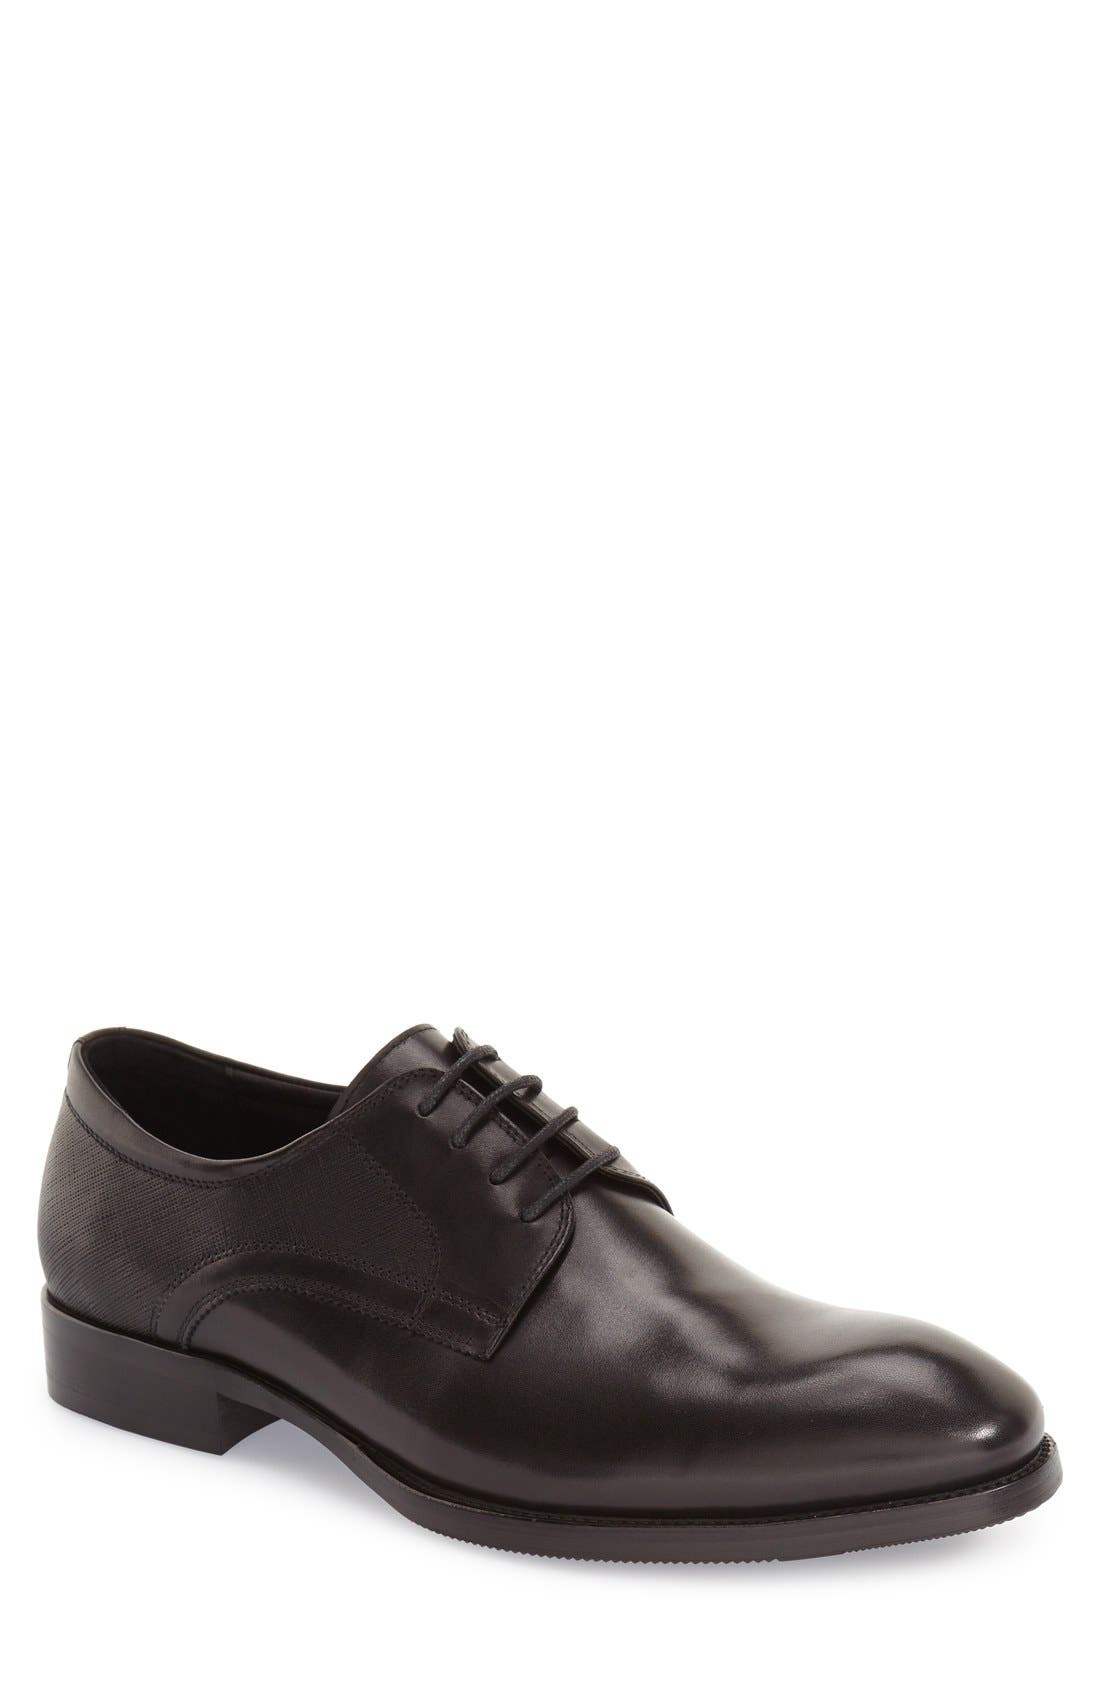 Zanzara 'Bruckner' Plain Toe Derby (Men)